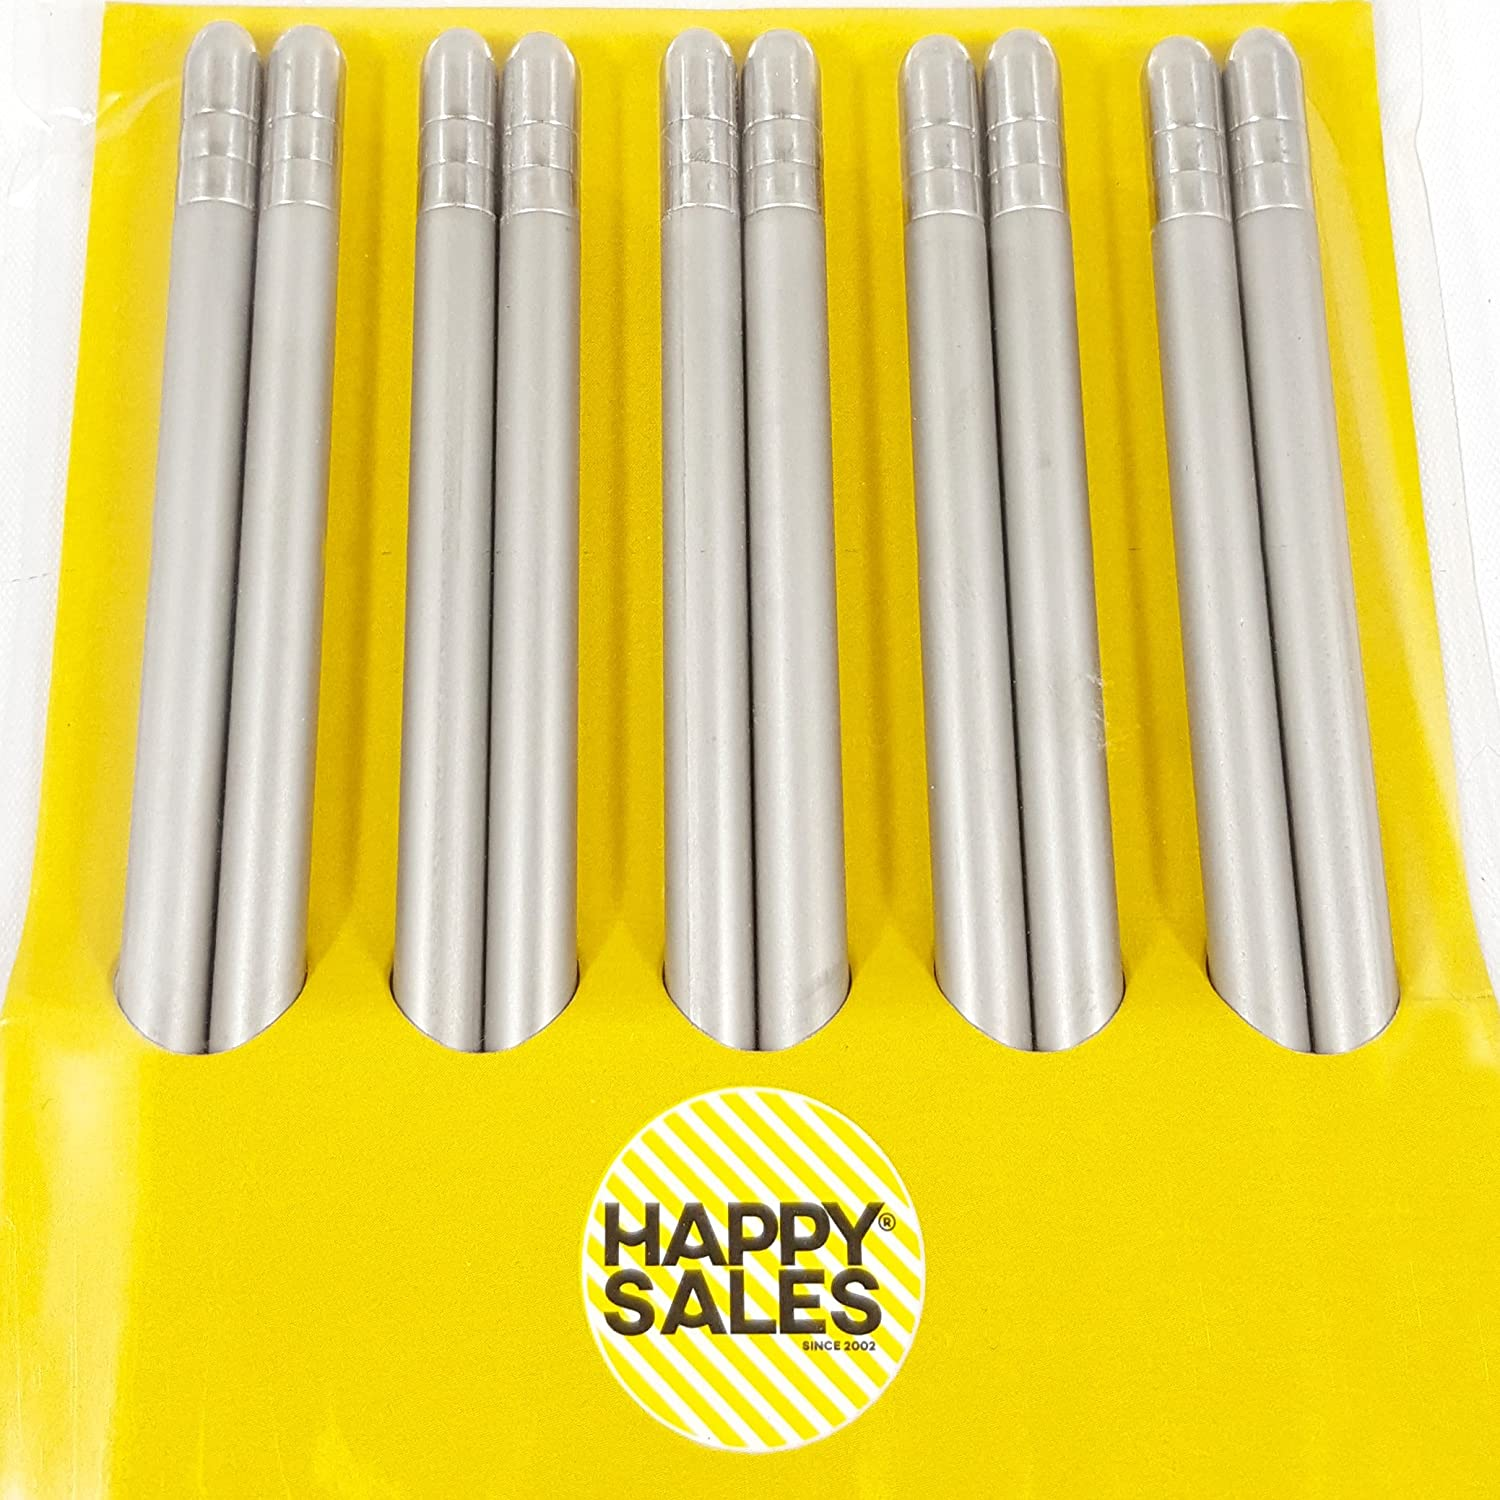 Happy Sales HSCS-SBR27 5 Pairs Brushed Stainless Steel Chopsticks